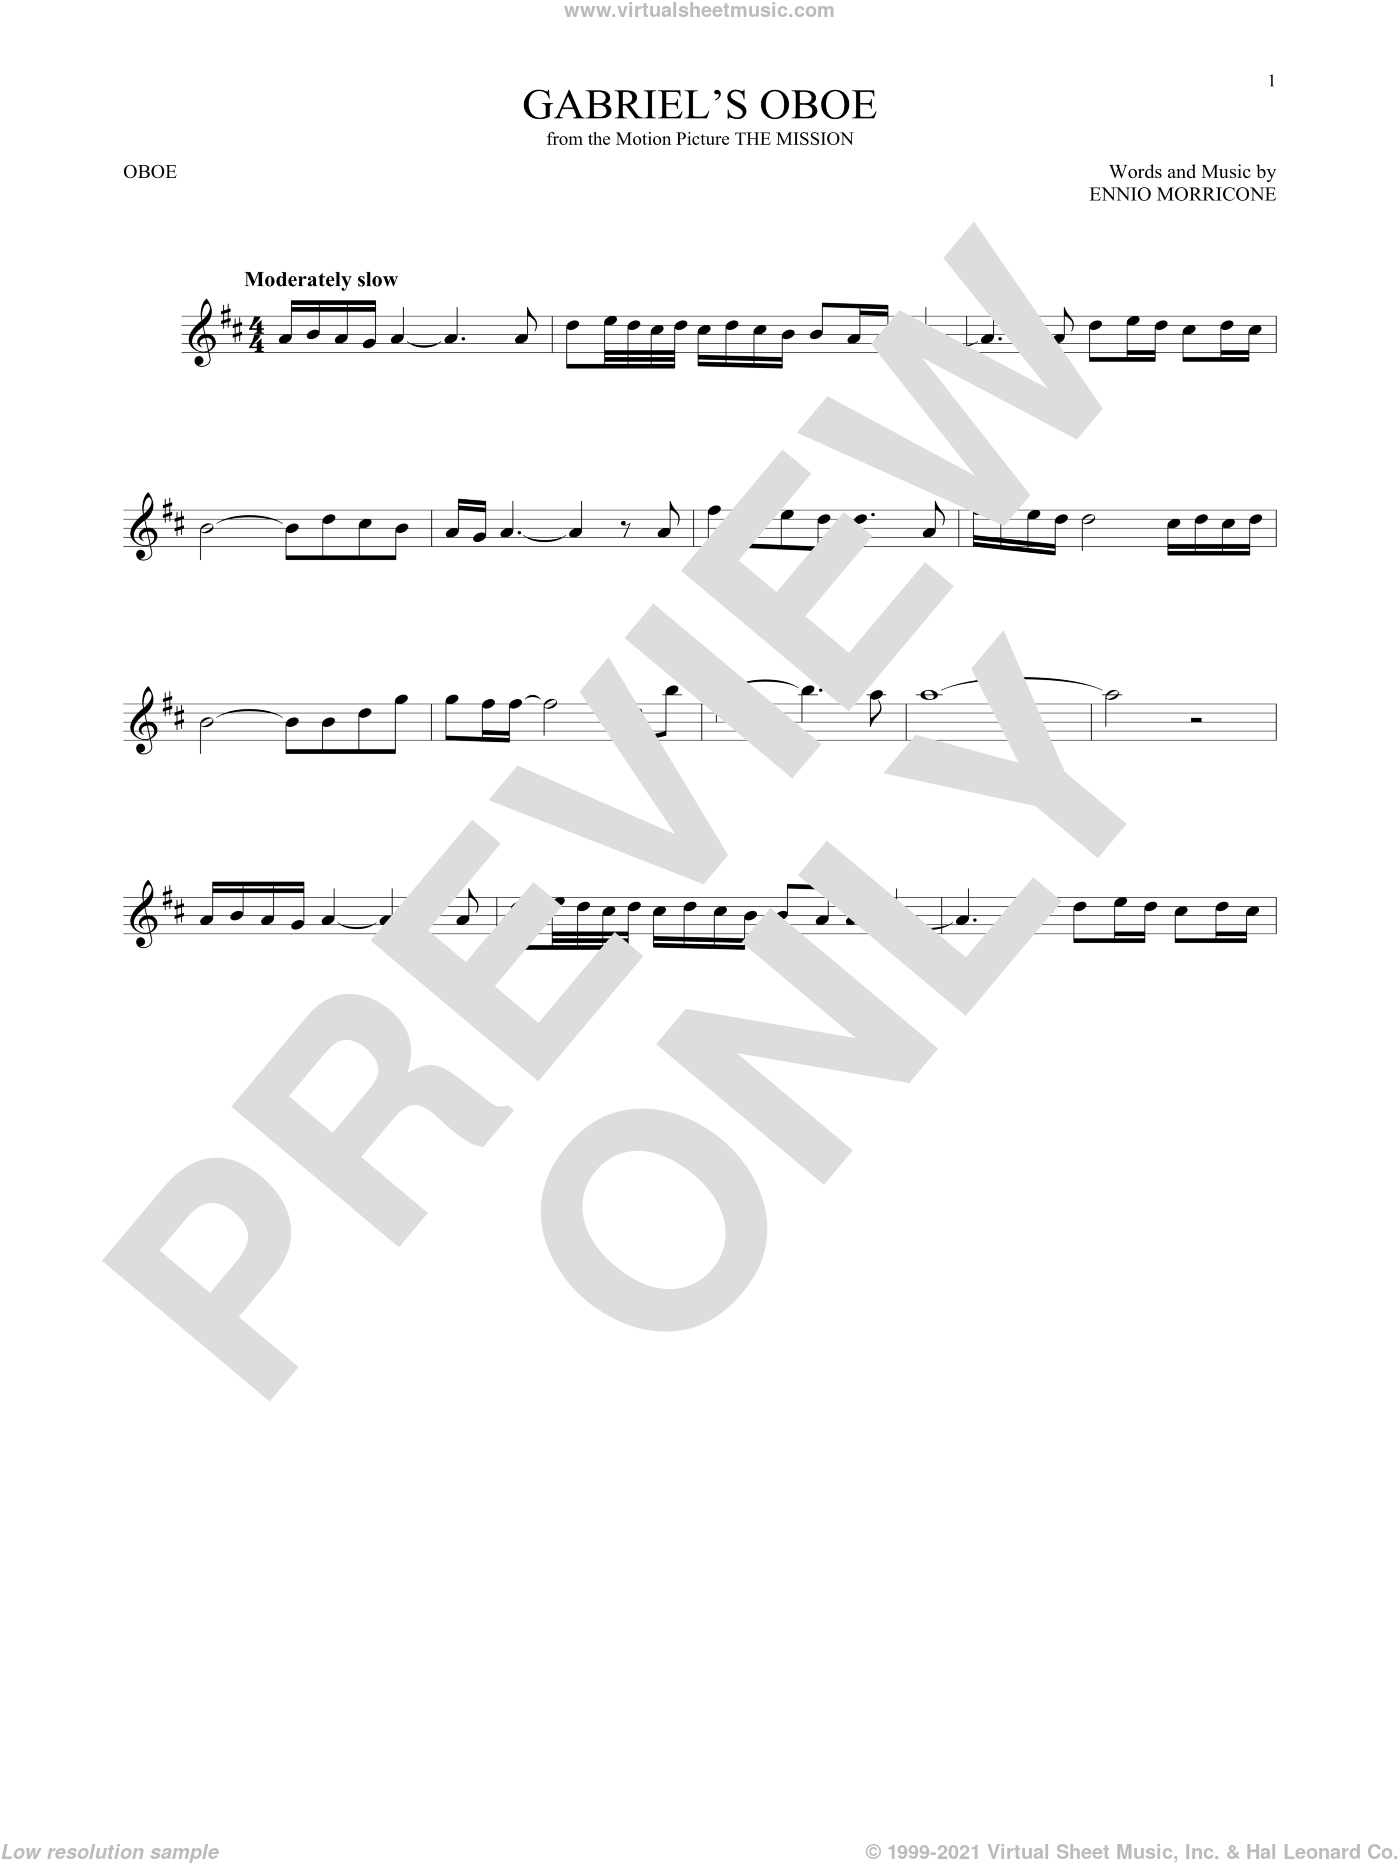 Gabriel's Oboe (from The Mission) sheet music for oboe solo by Ennio Morricone, classical score, intermediate skill level